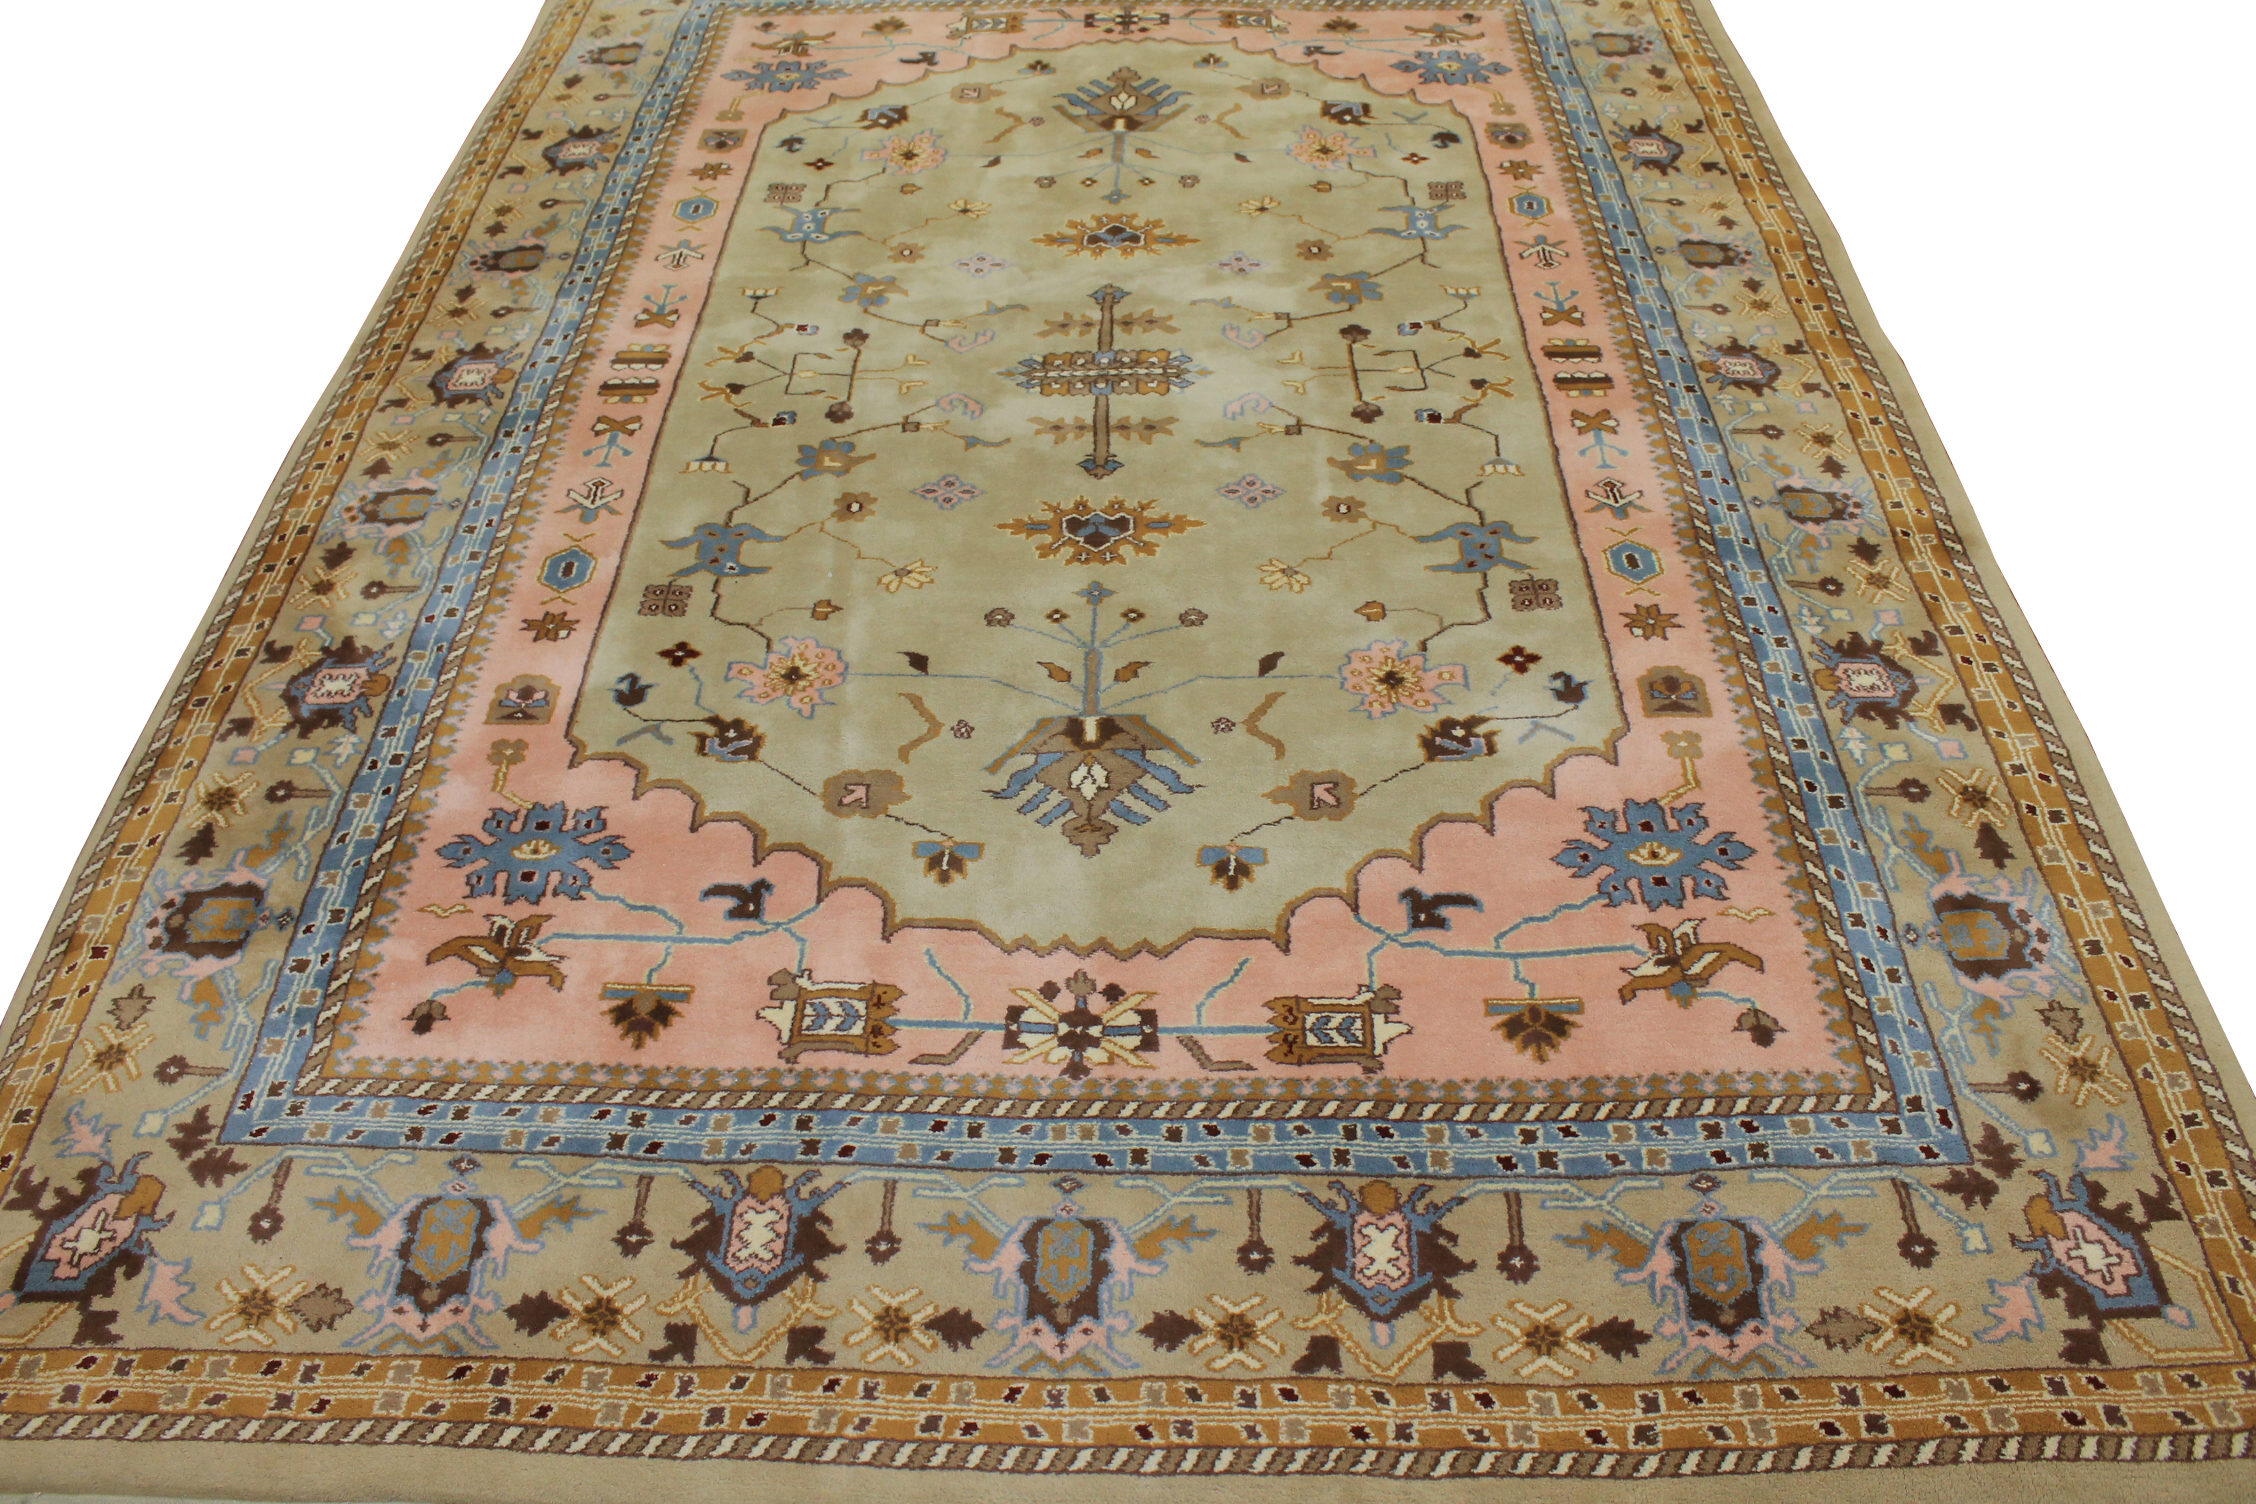 9x12 Traditional Hand Knotted Wool Area Rug - MR0988